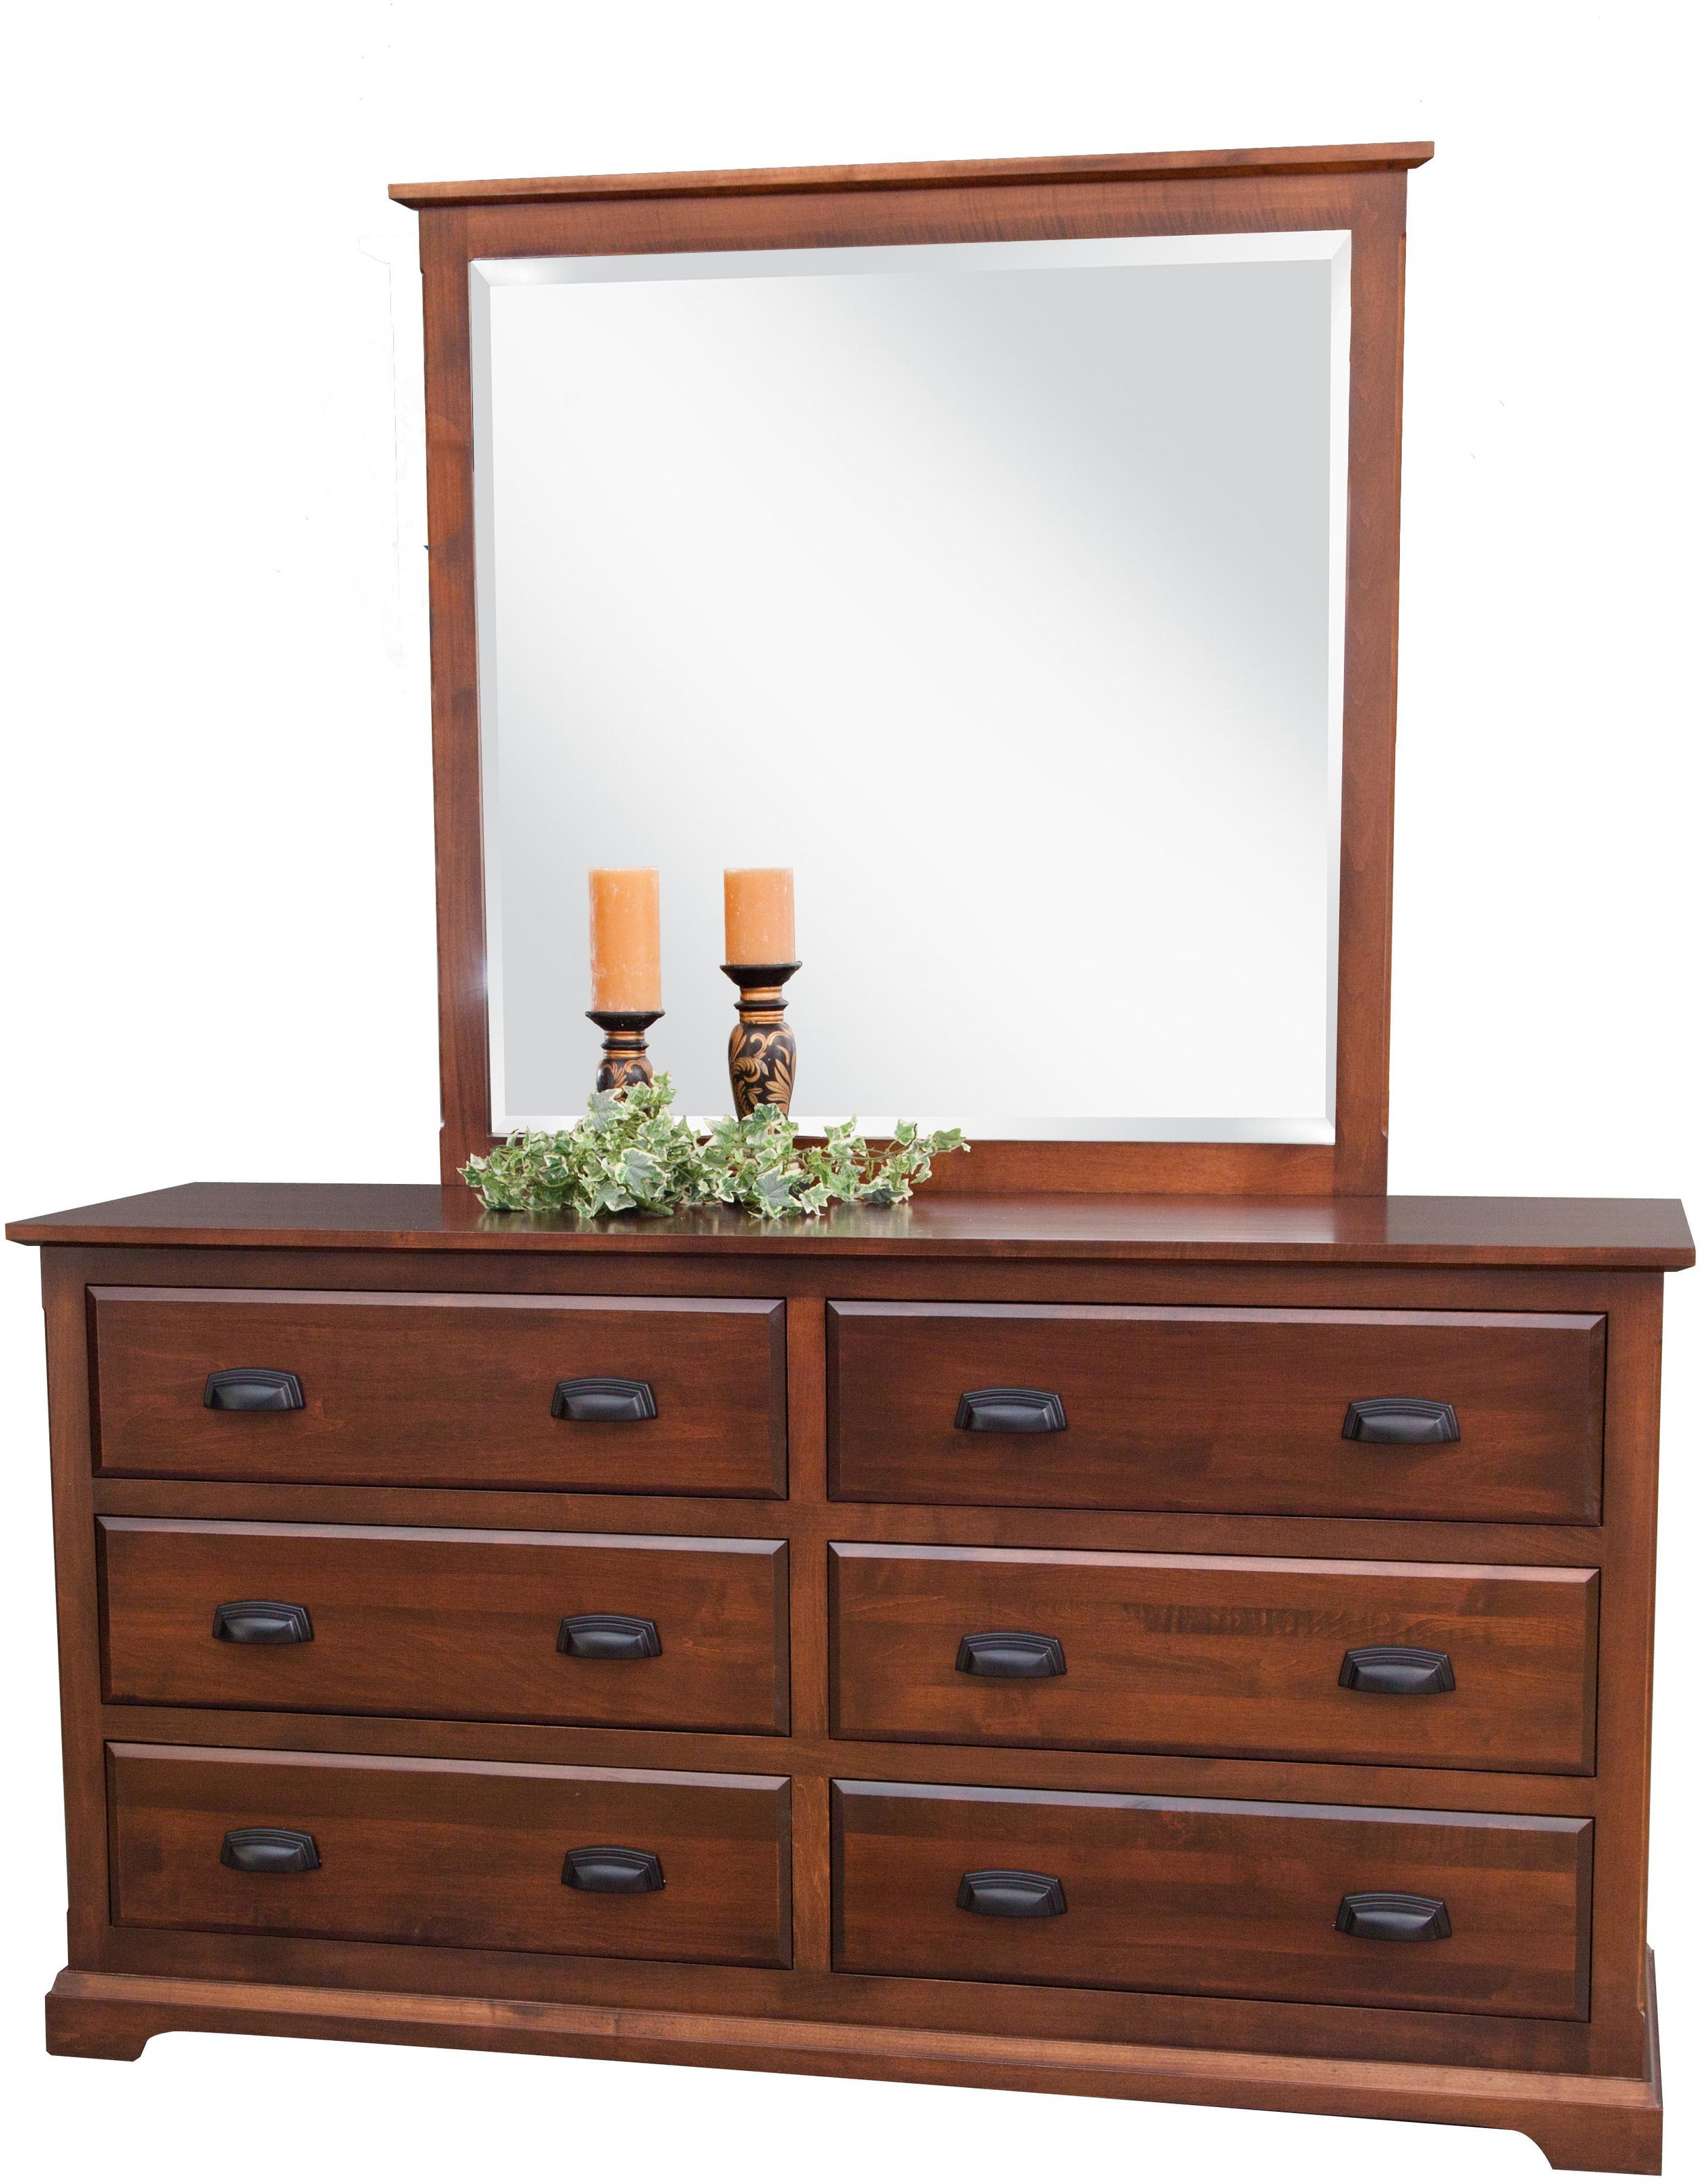 traditional style amish bedroom furniture for sale in Poland, Ohio